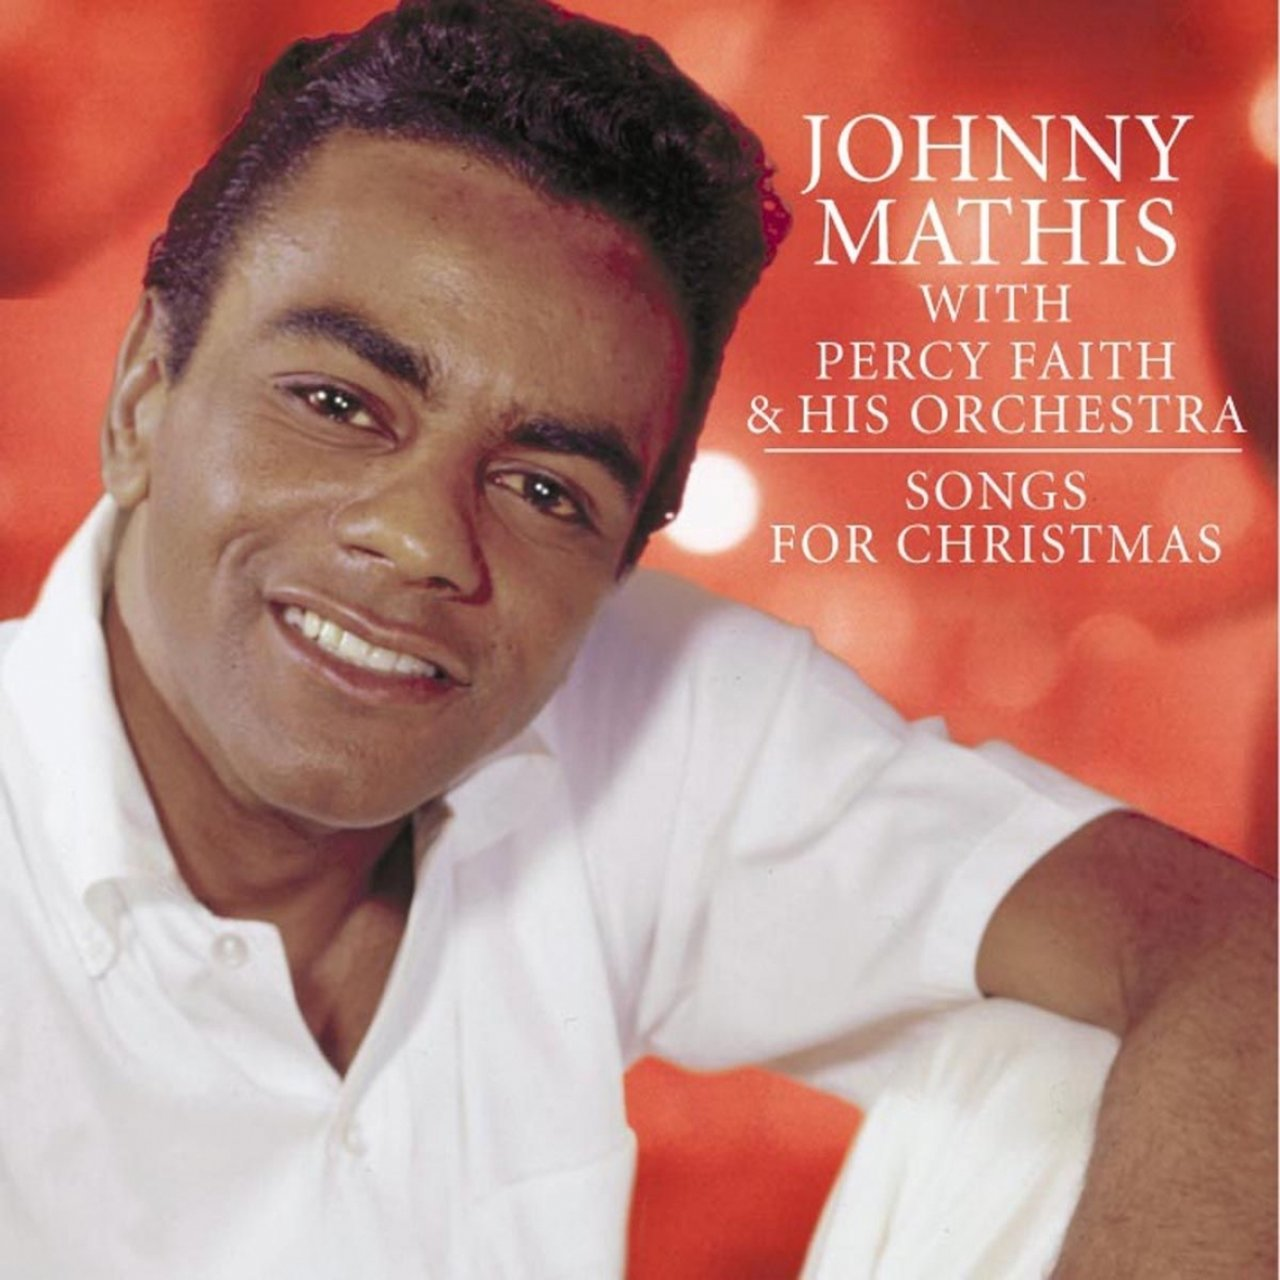 TIDAL: Listen to Johnny Mathis with Percy Faith & His Orchestra on TIDAL